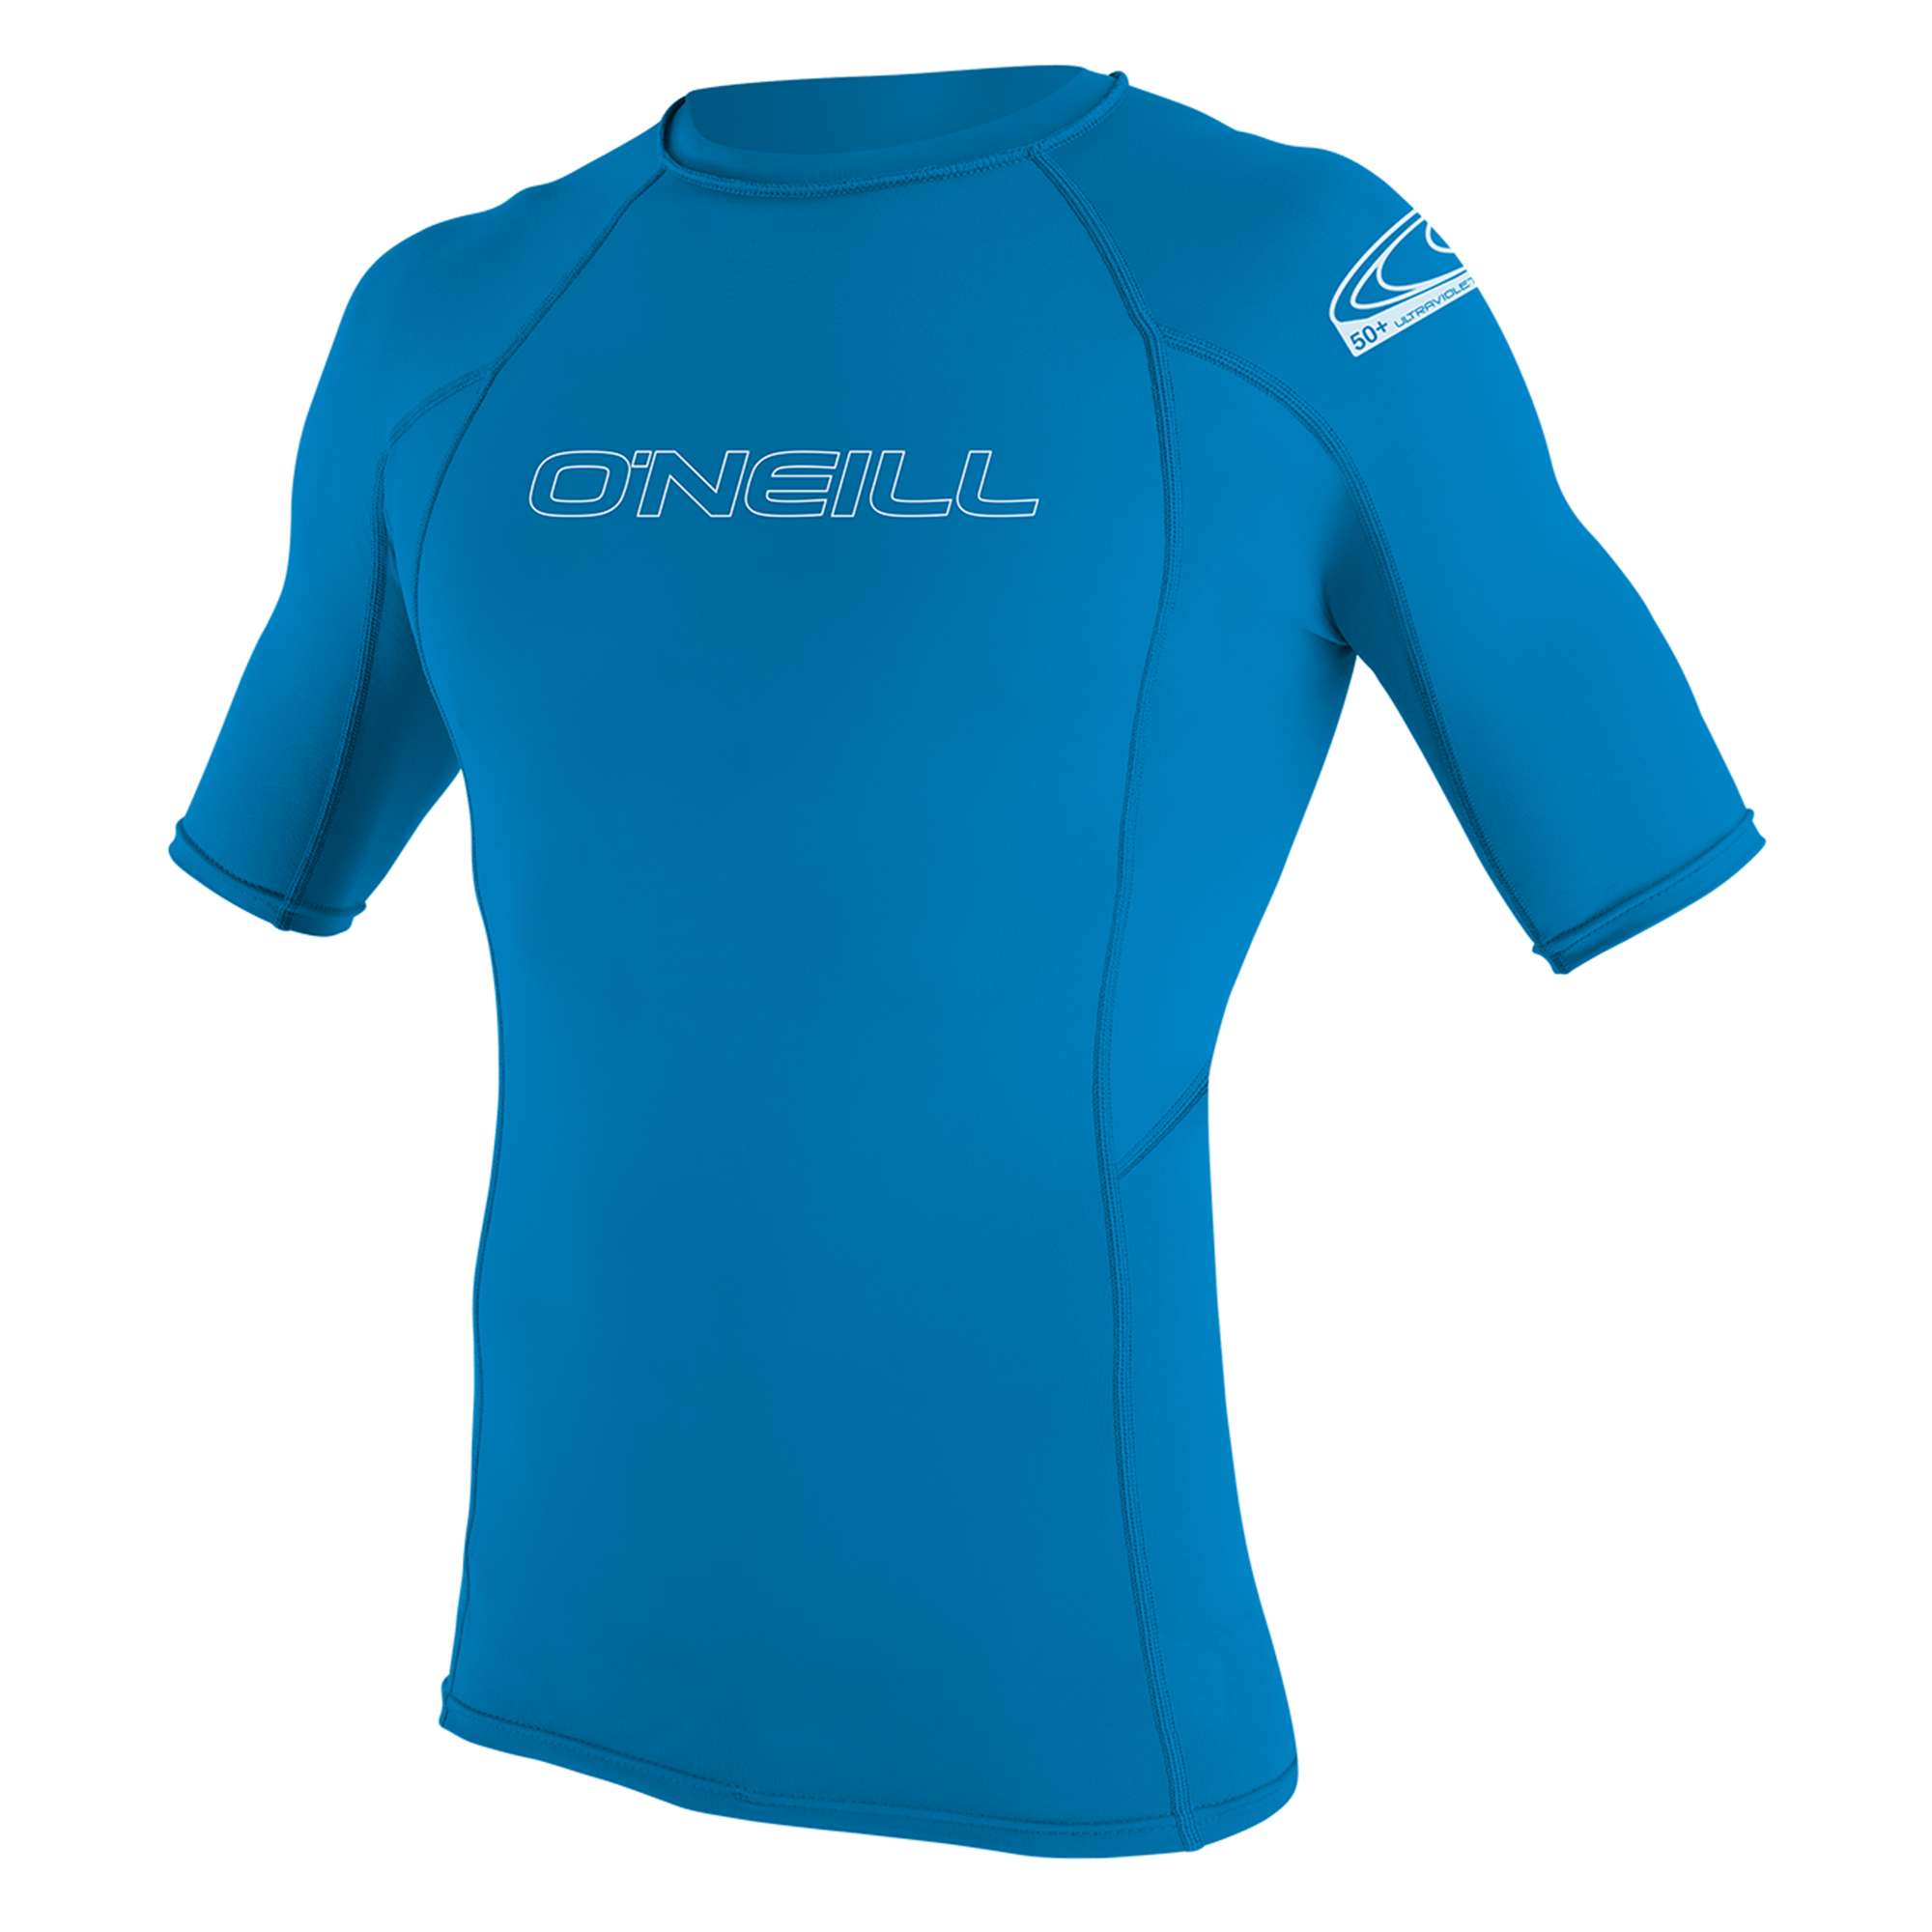 O'NEILL YOUTH BASIC SKINS 50+ SHORT SLEEVE SUN SHIRT